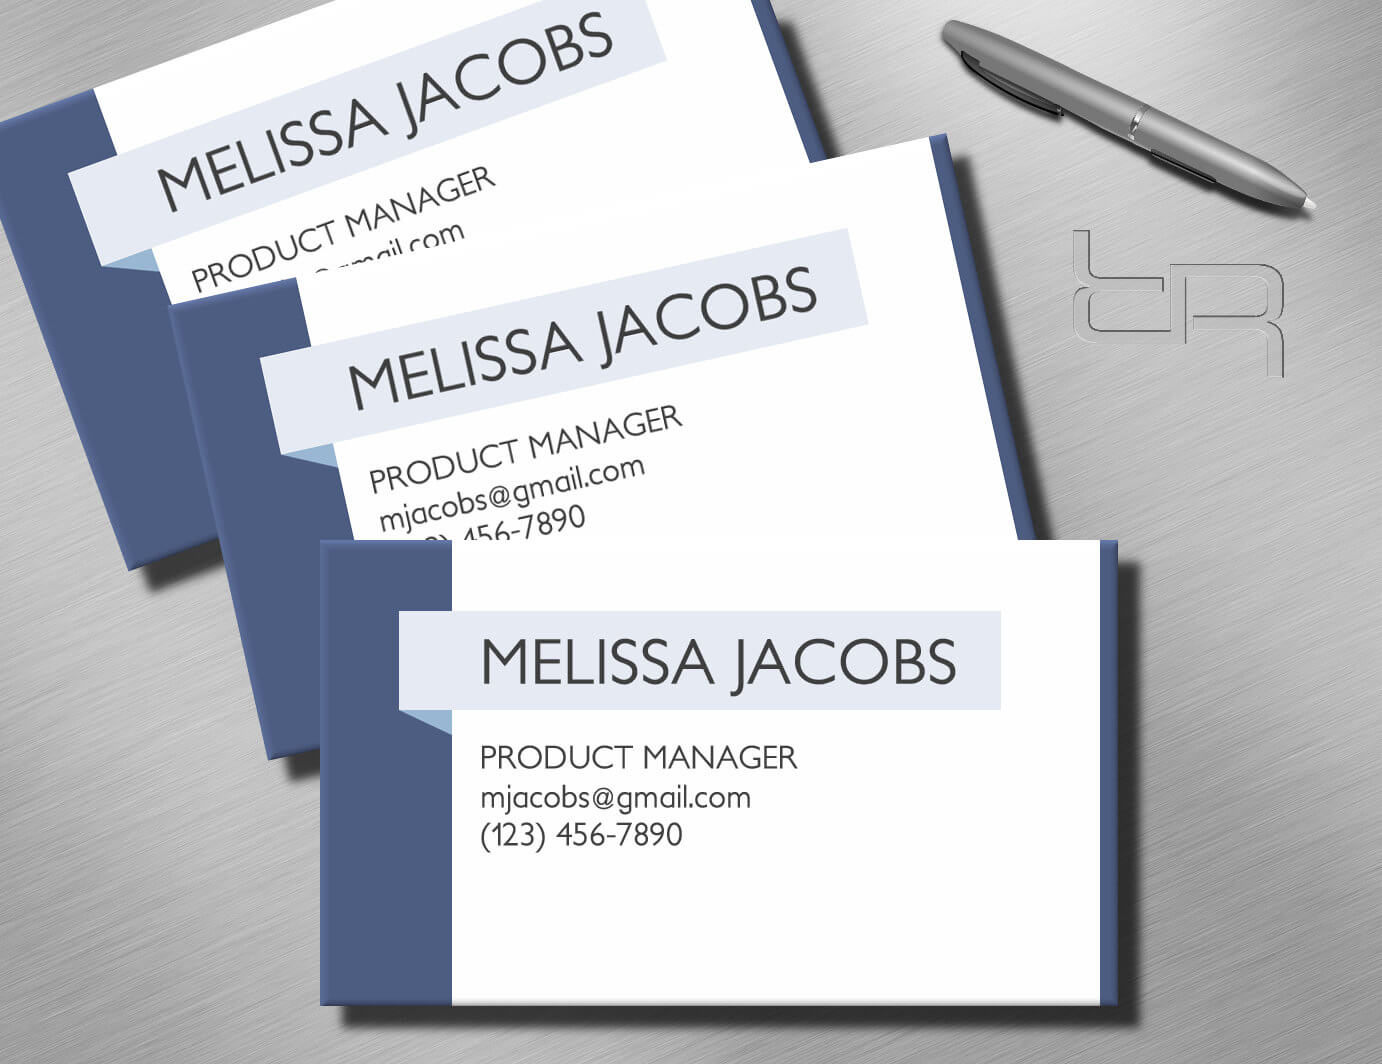 Southworth Business Card Template ] - Printingforless Com Within Southworth Business Card Template